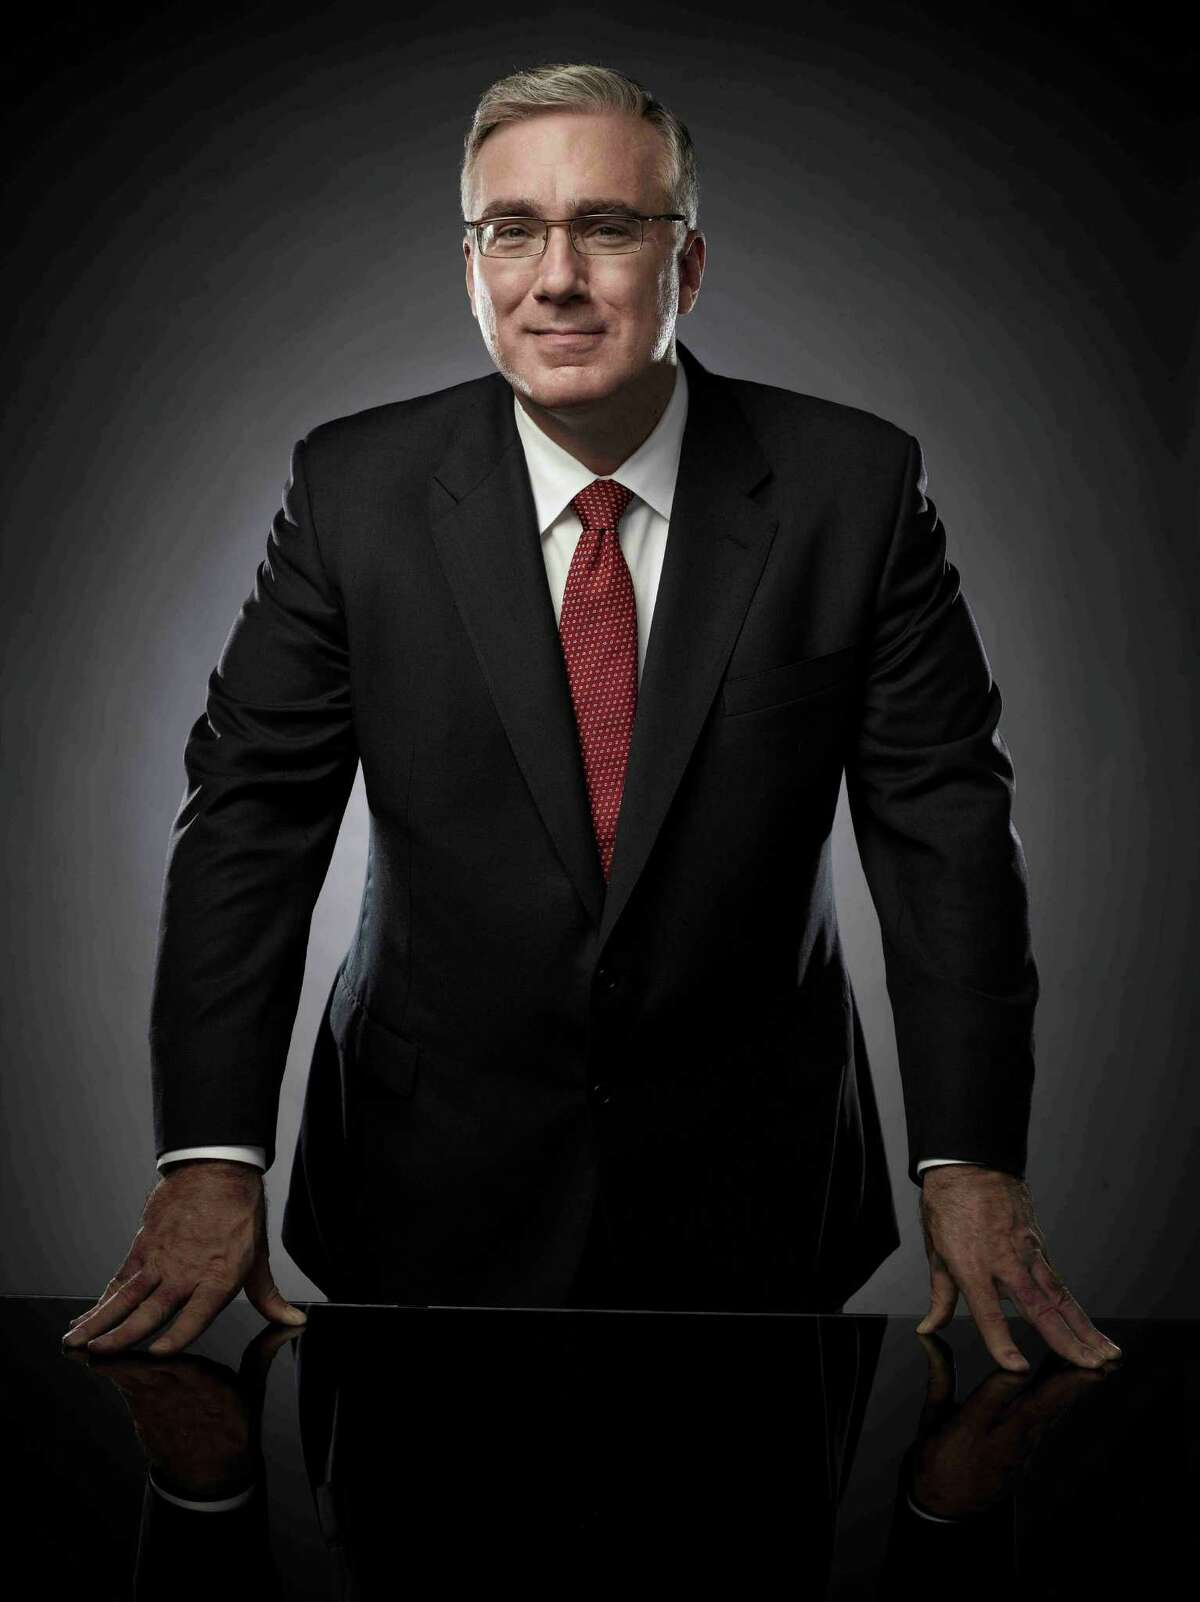 """In this undated photo released by Cuttent TV, commentator Keith Olbermann is shown. Olbermann's new show, Countdown With Keith Olbermann"""" on Current TV premieres on June 20, 2011. (AP Photo/Current TV, Justin Stephens)"""